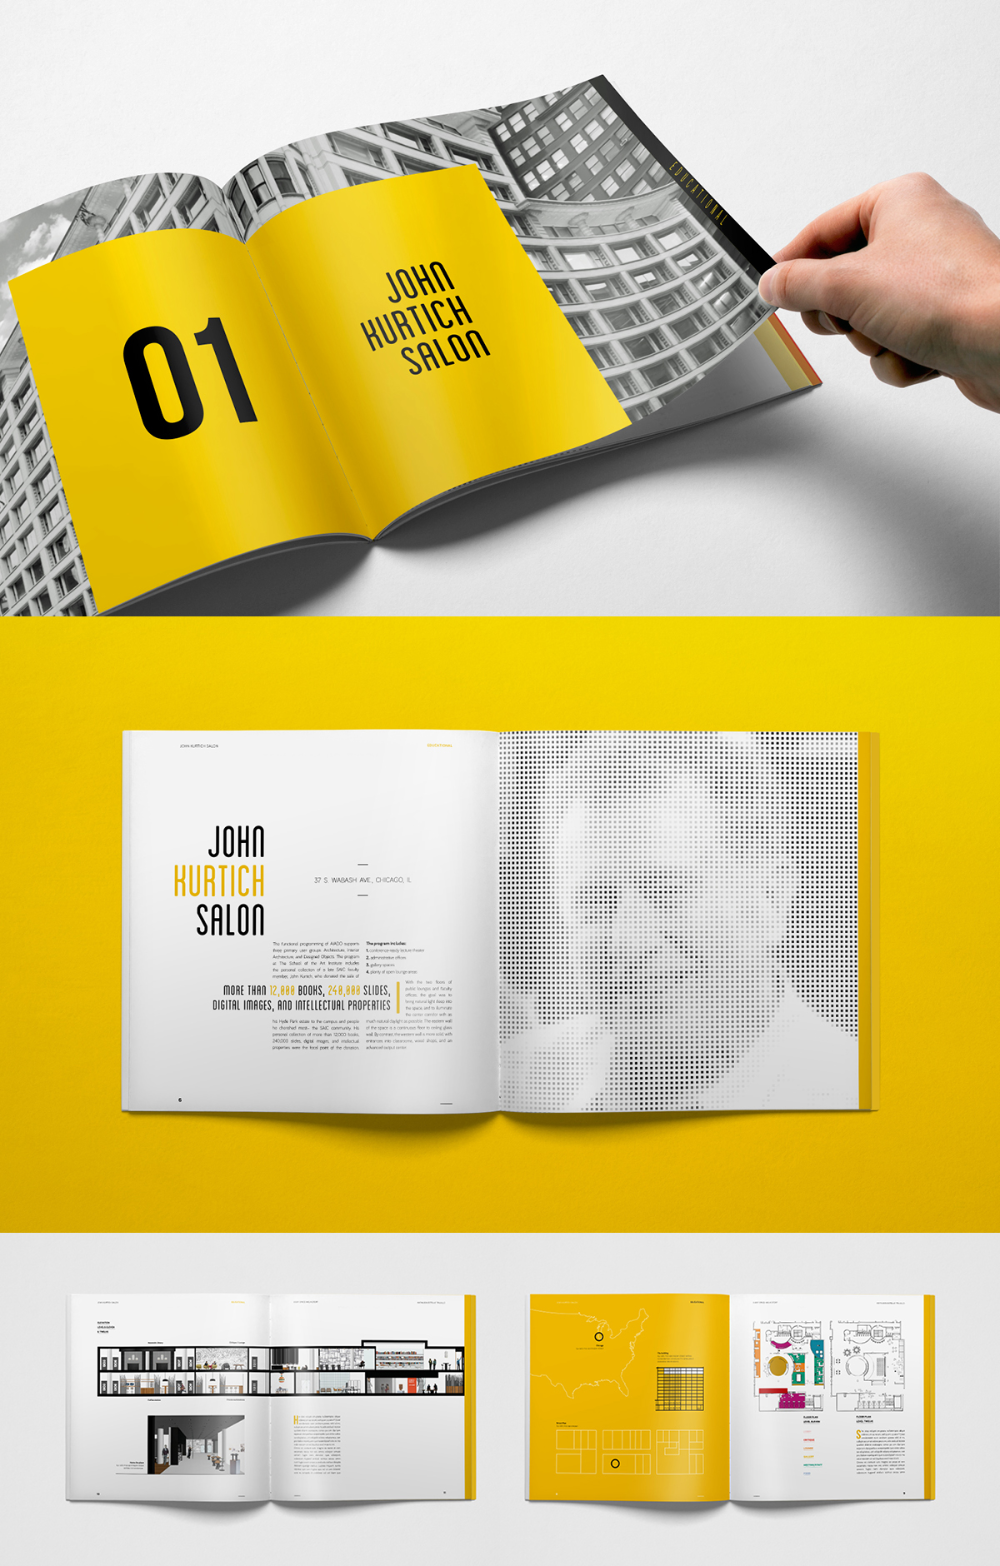 Square Brochure Projects Photos Videos Logos Illustrations And Branding On Behance Booklet Design Layout Booklet Design Brochure Design Layouts